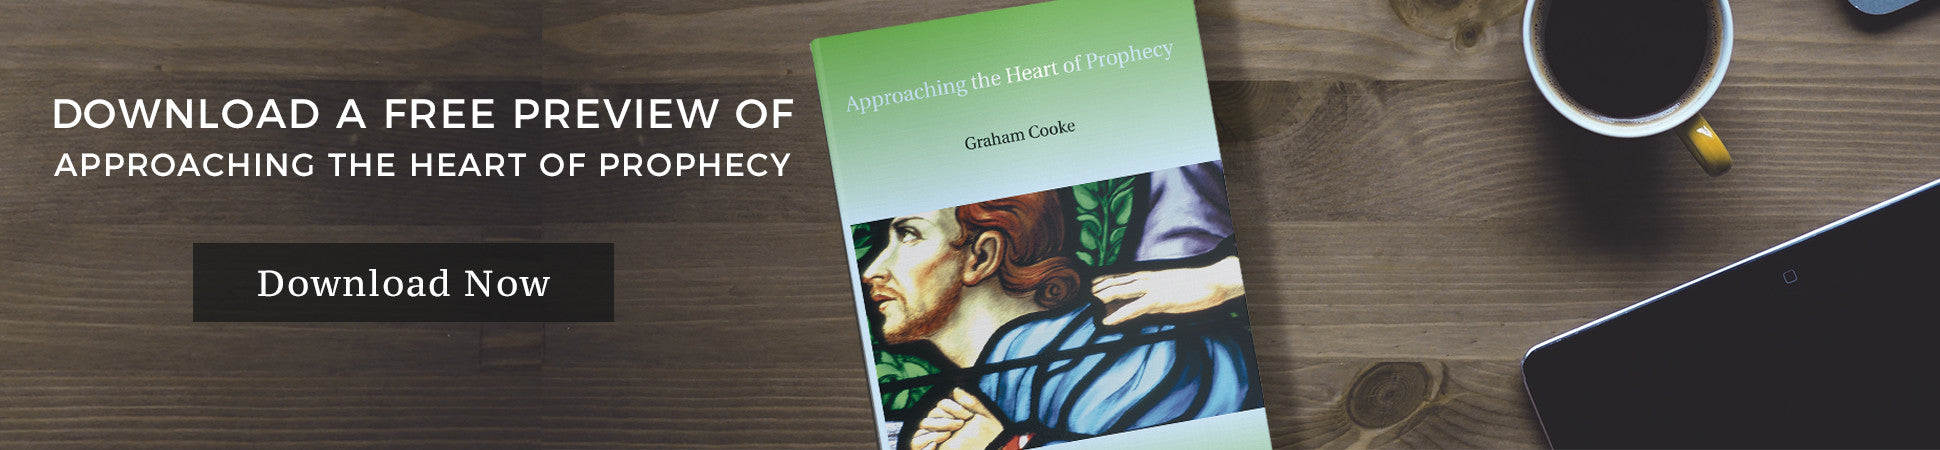 Approaching the Heart of Prophecy FREE preview